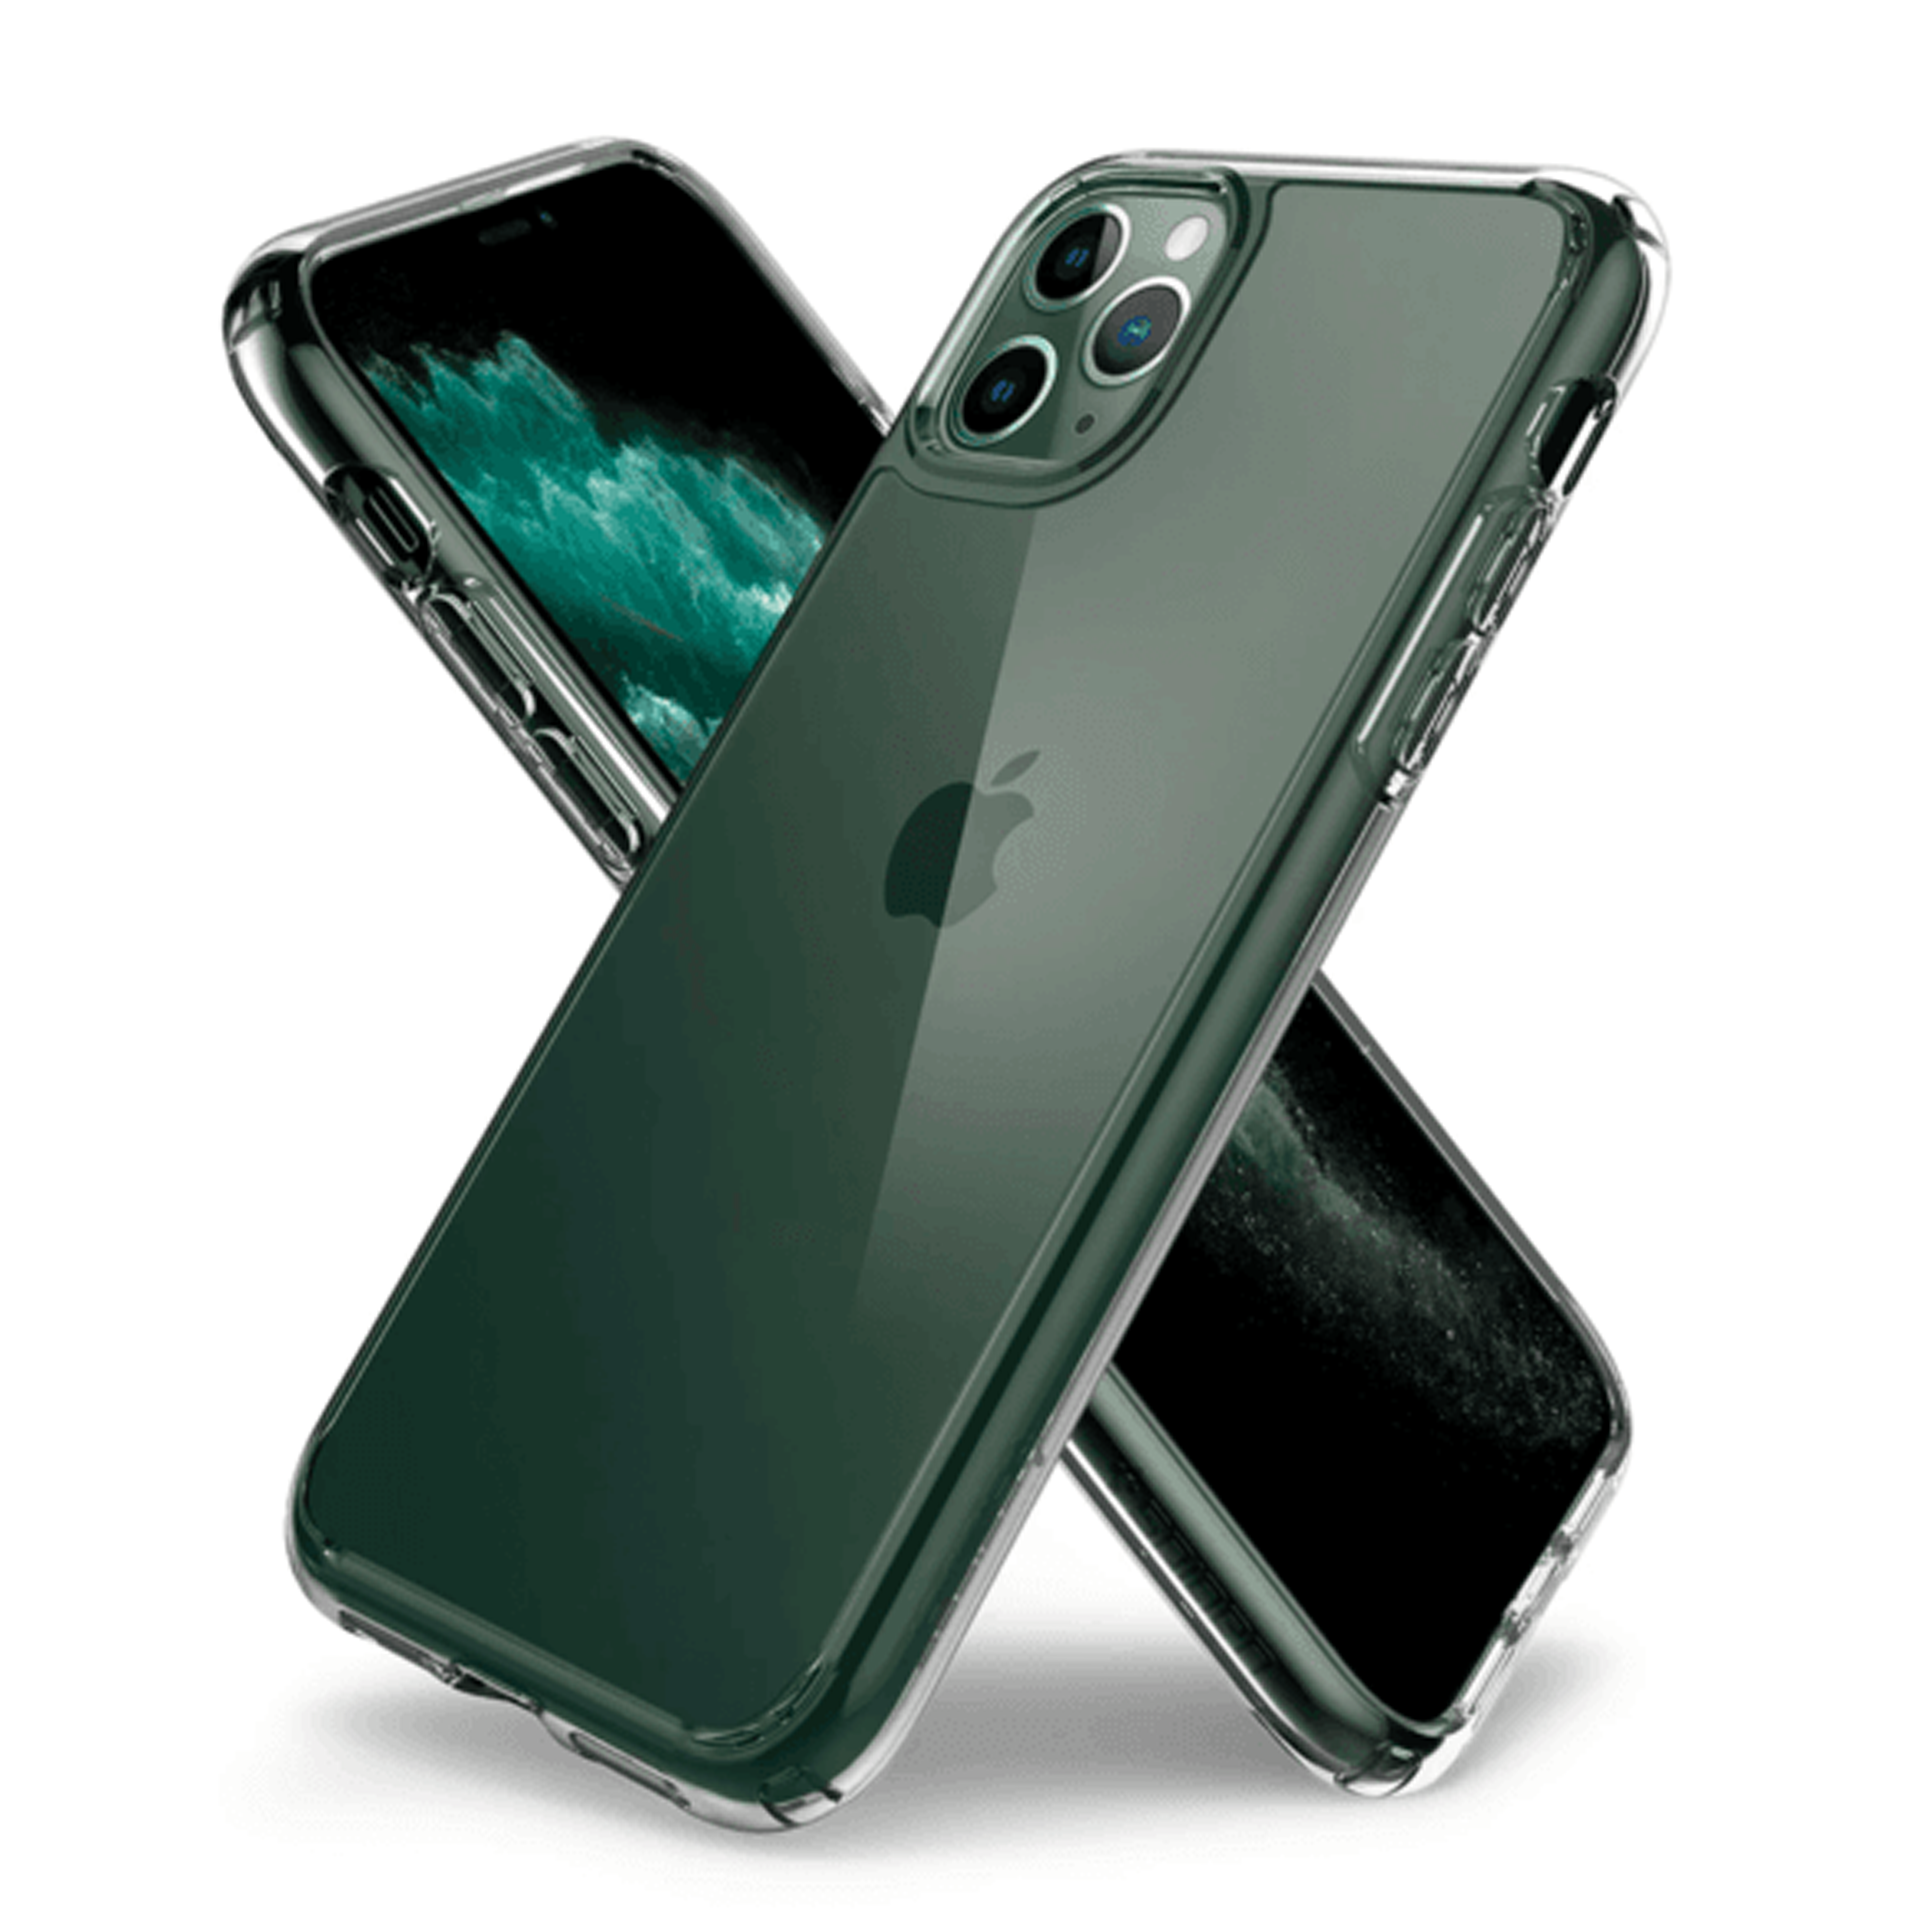 Apple Iphone 11 Pro Max 256GB With Facetime Midnight Green ...